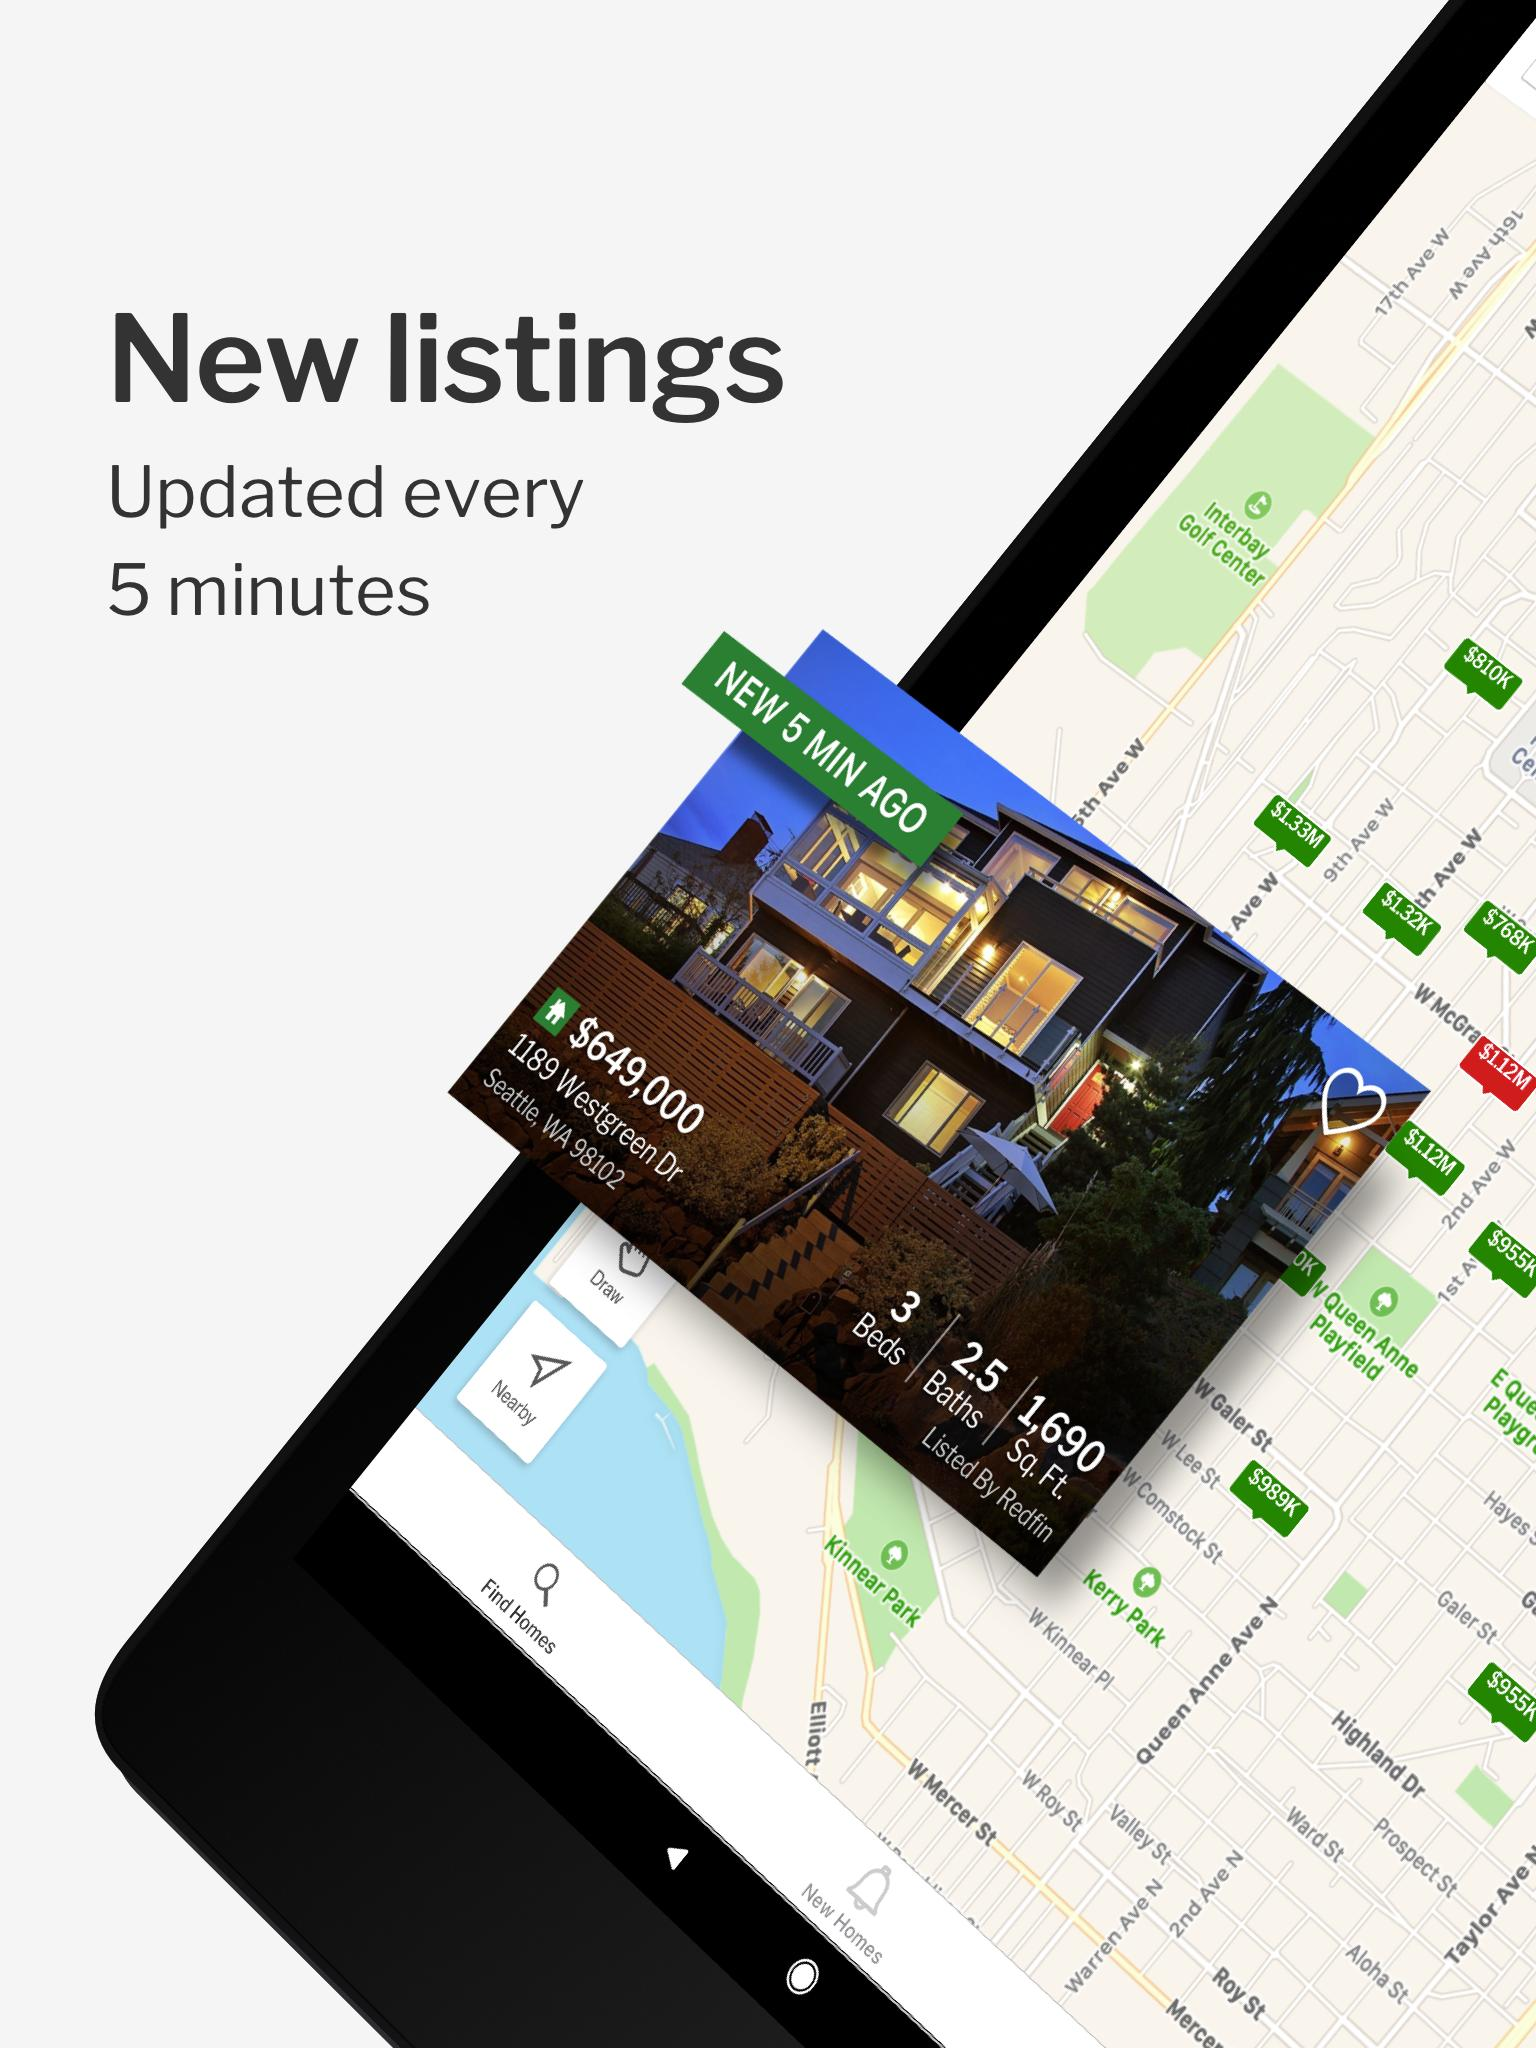 Redfin Real Estate: Search & Find Homes for Sale